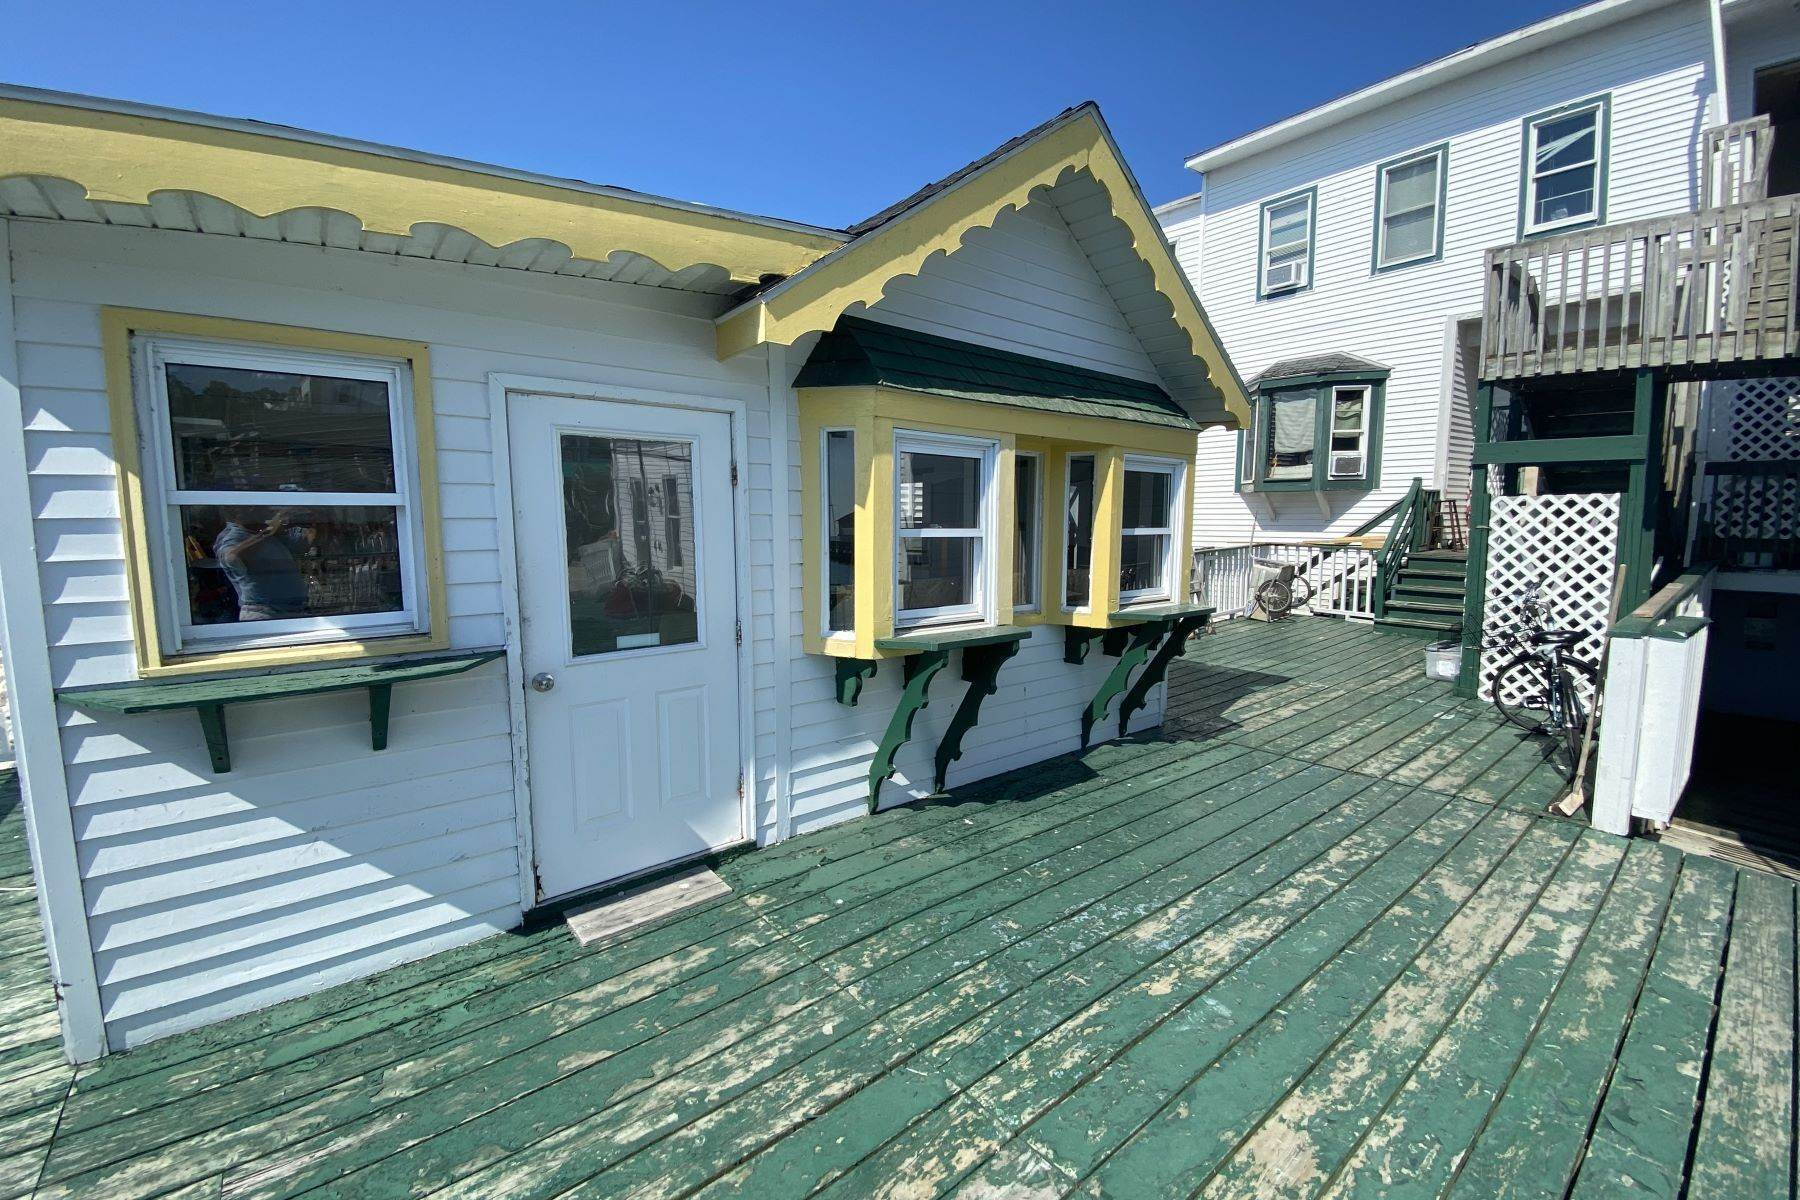 7. Commercial for Sale at Waterfront commercial building on Mackinac Island with retail space 7293 & 7279 Main Street Mackinac Island, Michigan 49757 United States